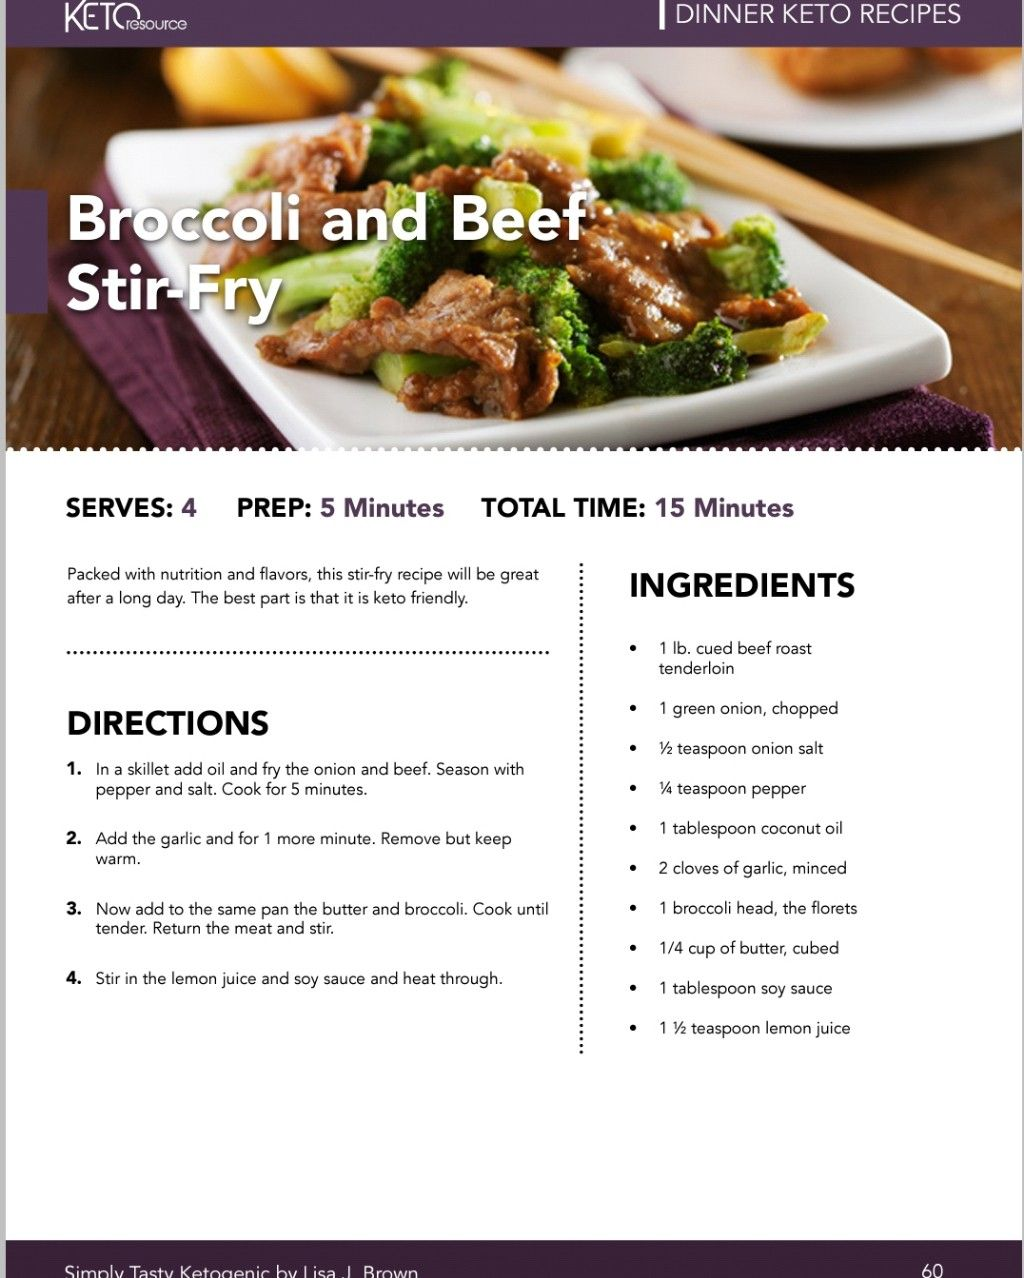 Simply Tasty Ketogenic Recipes Free Download For Any Devices Pdf 19 Mb Appetizer Recipes Keto Side Dishes Side Dish Recipes